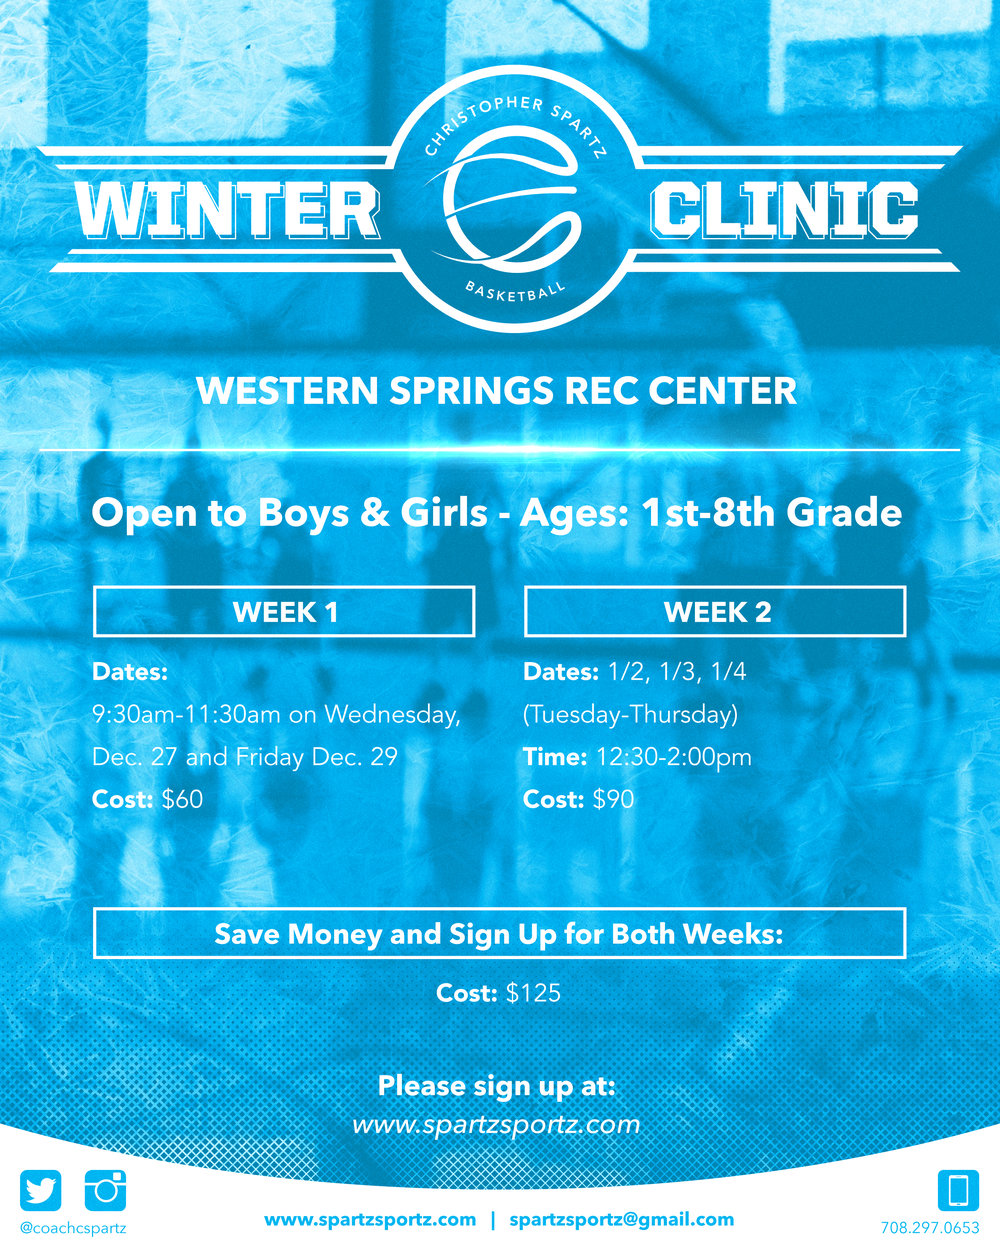 Winter-Clinic_CSB.jpg